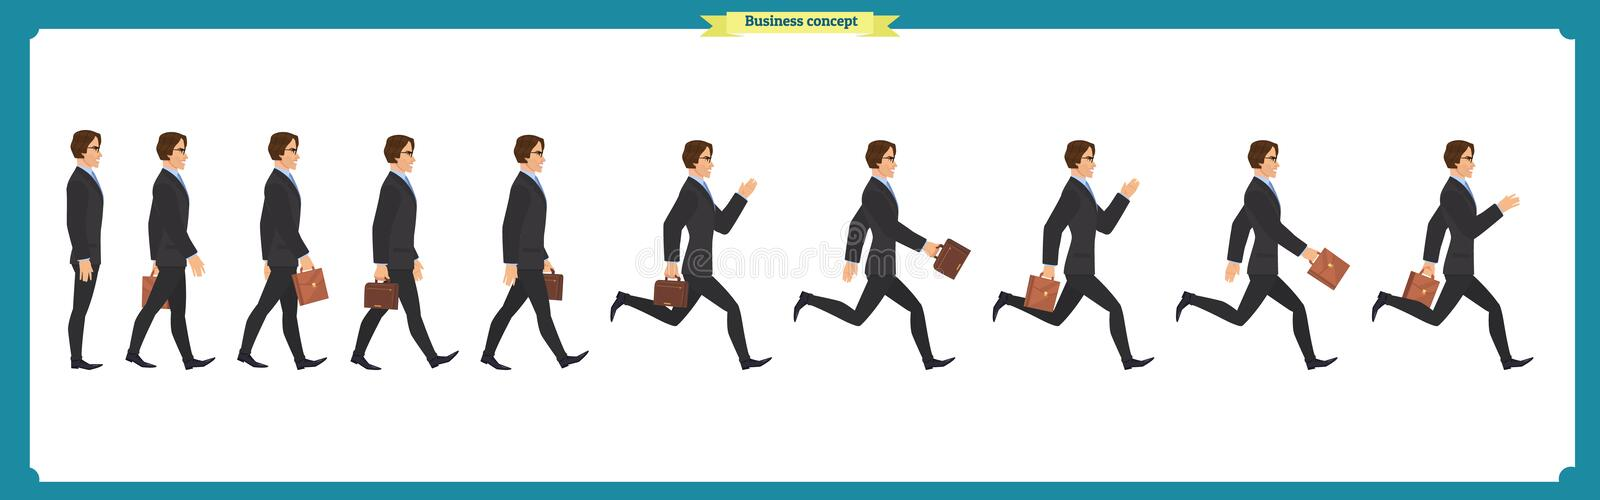 Ensemble de collection d'homme d'affaires de marche et courant Promenade, course, active illustration stock